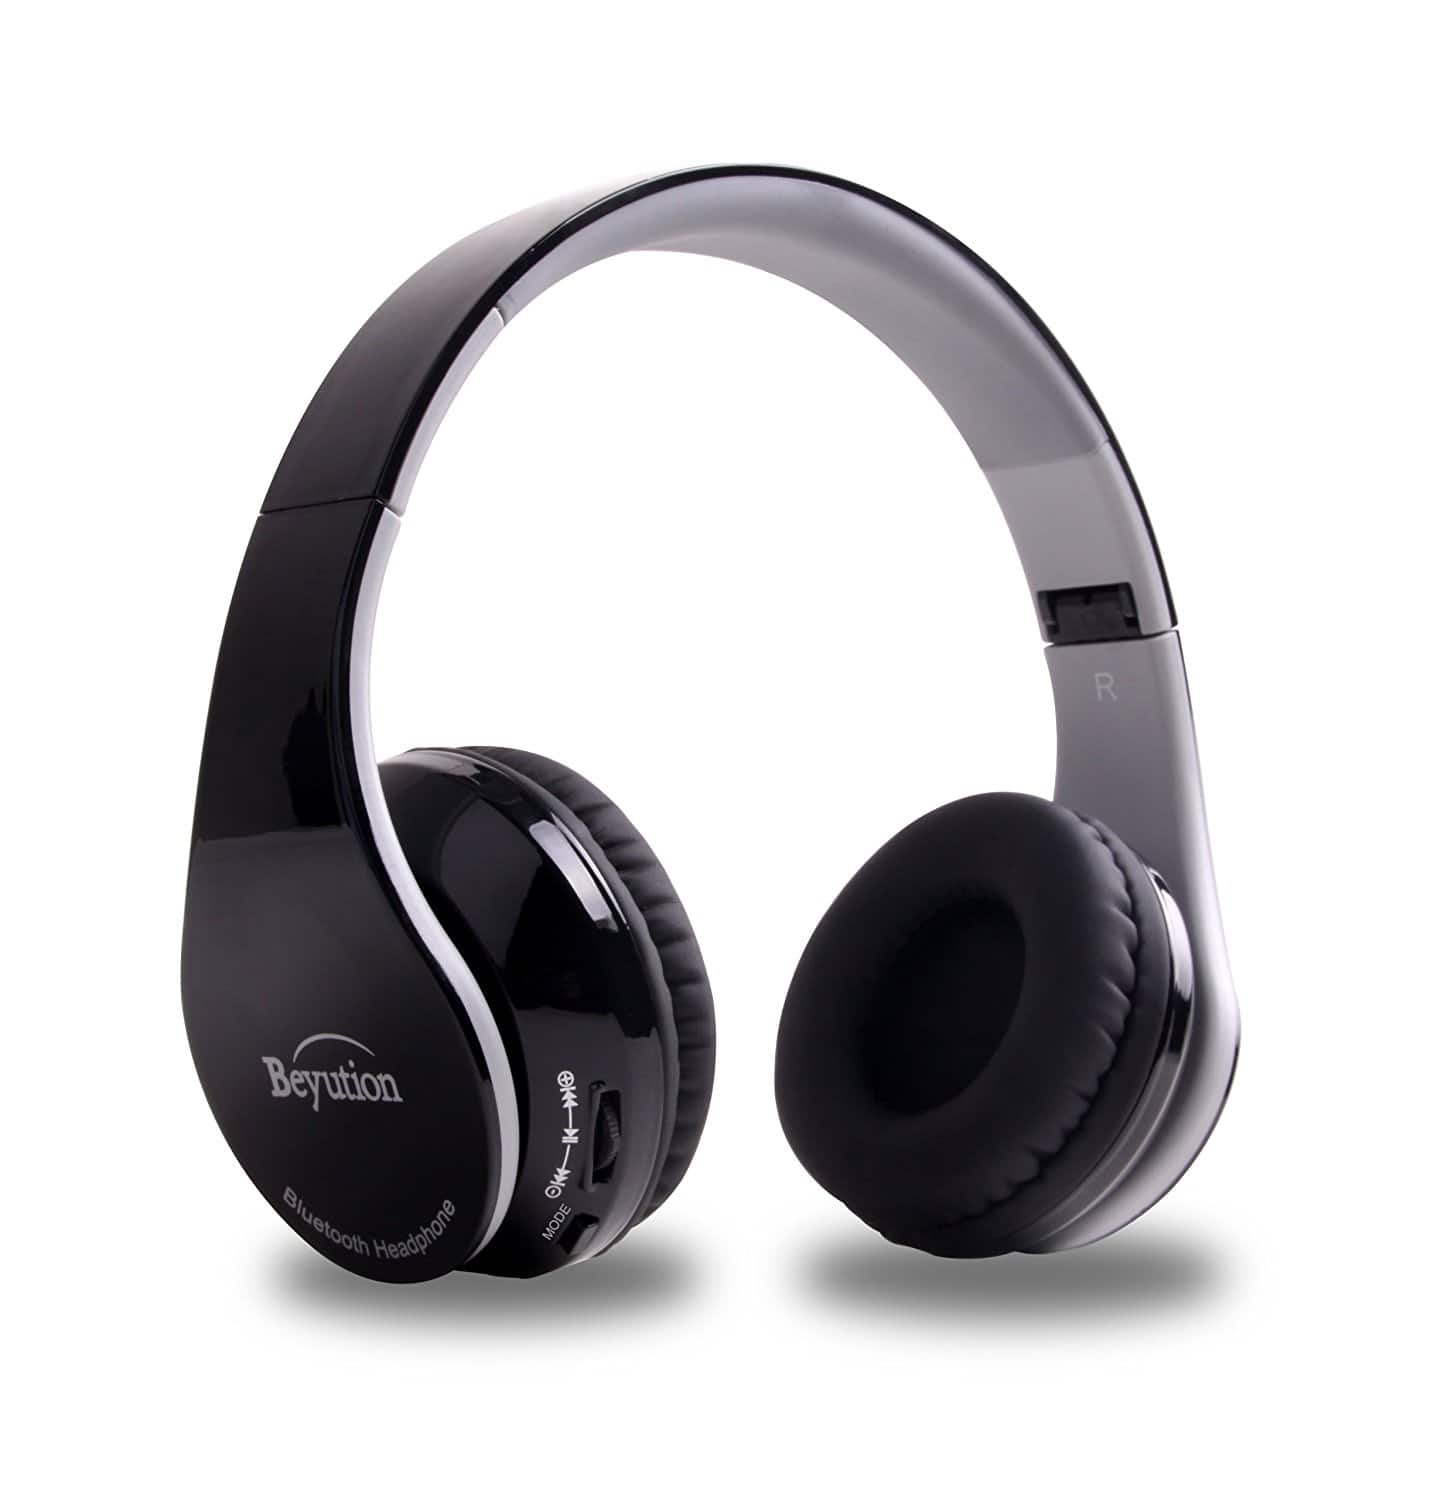 Wireless (Bluetooth v4.1) Foldable Headphones with Mic - $14.69 after promo code & free shipping